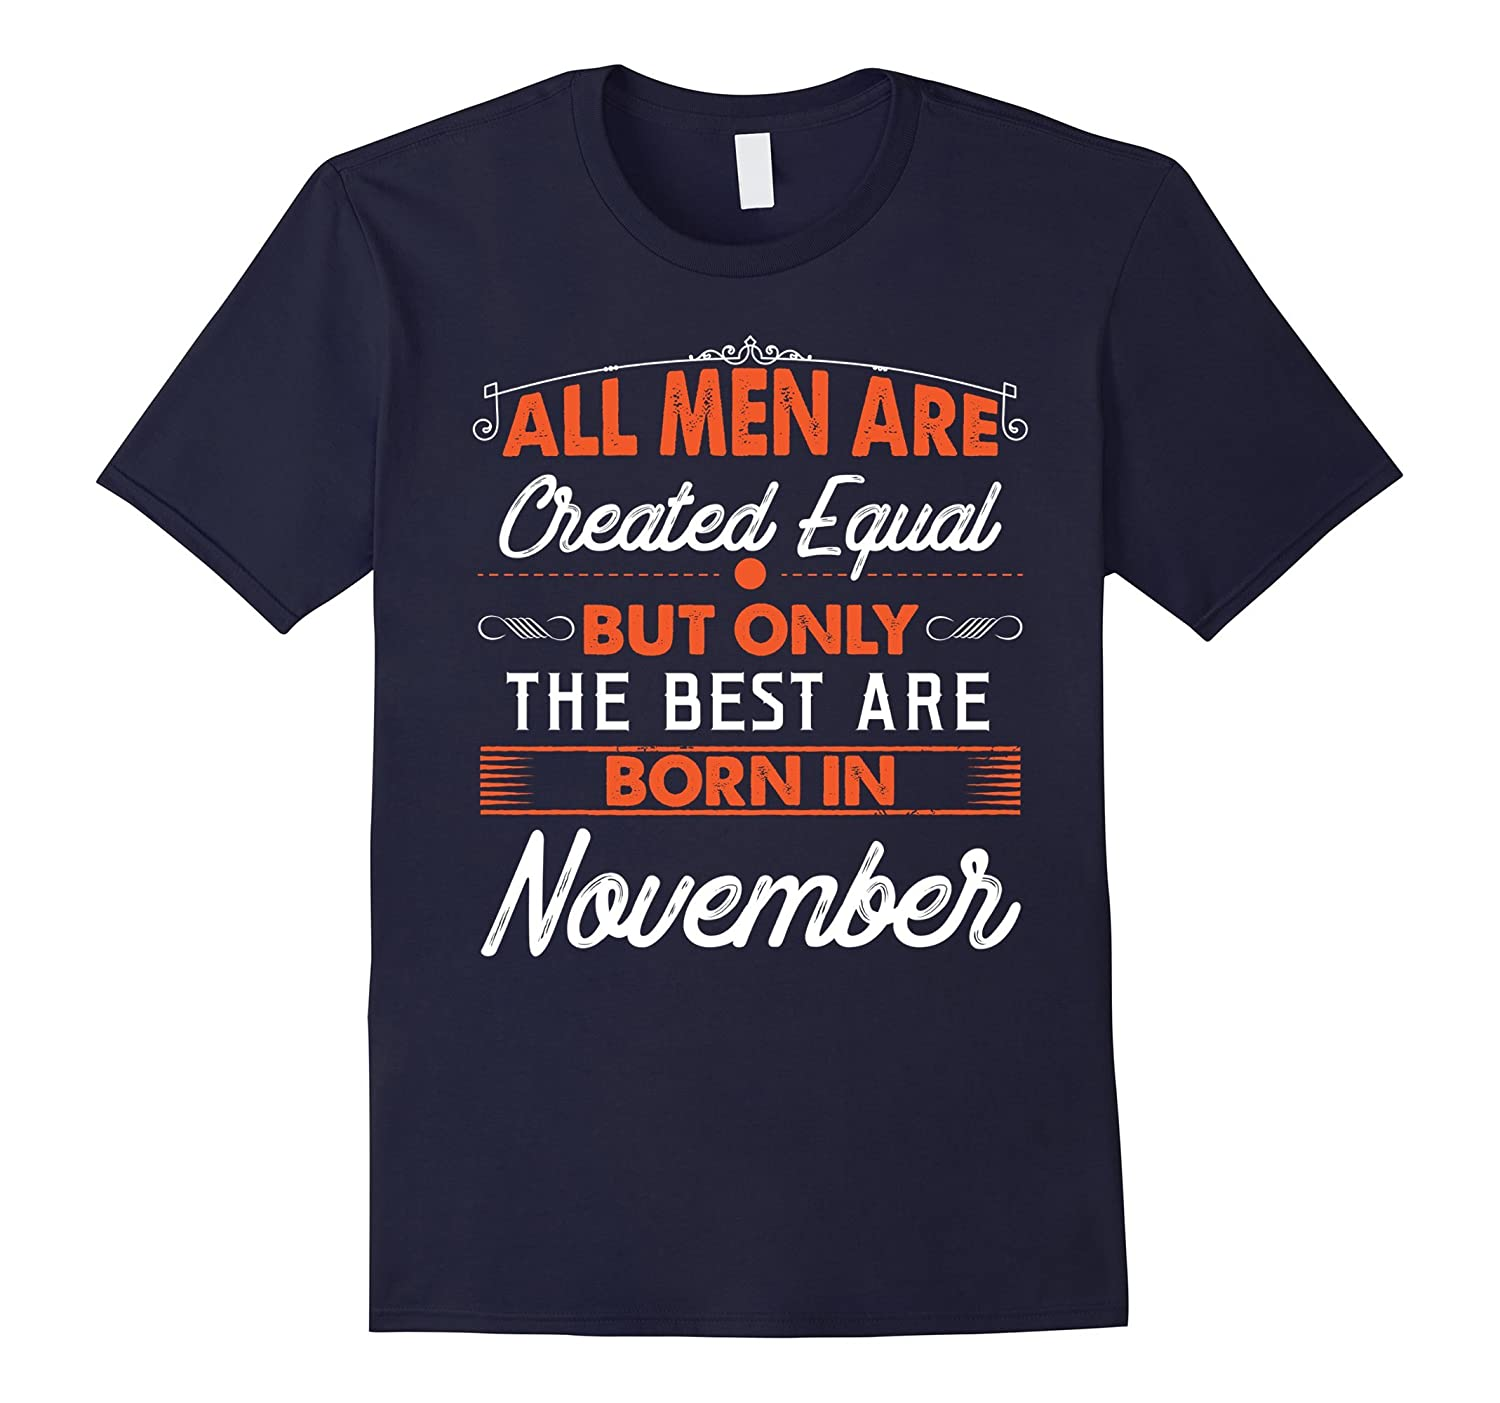 All Men Are Created Equal But The Best Are Born In November-T-Shirt